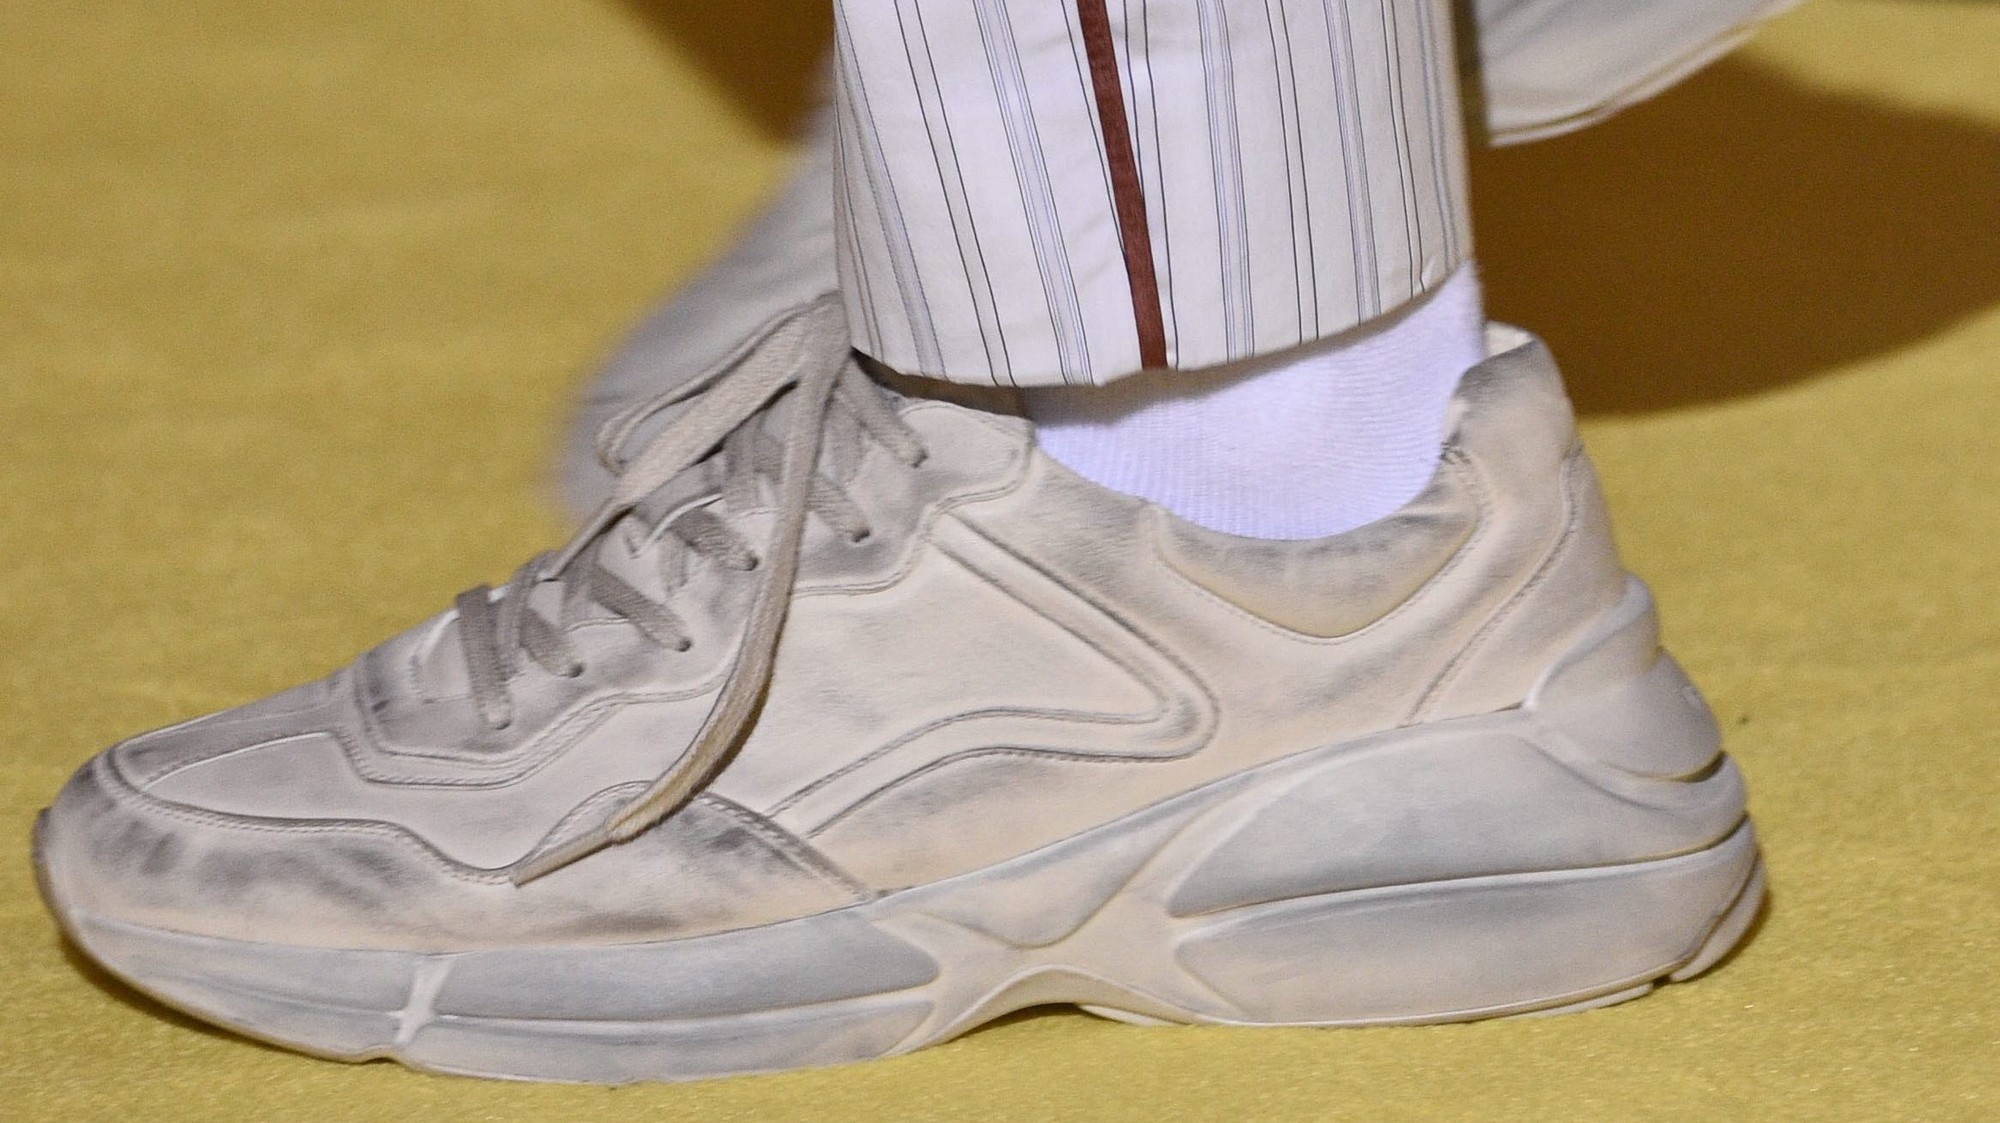 4134efc51a0 why designers are sending dirty sneakers down the runway - i-D